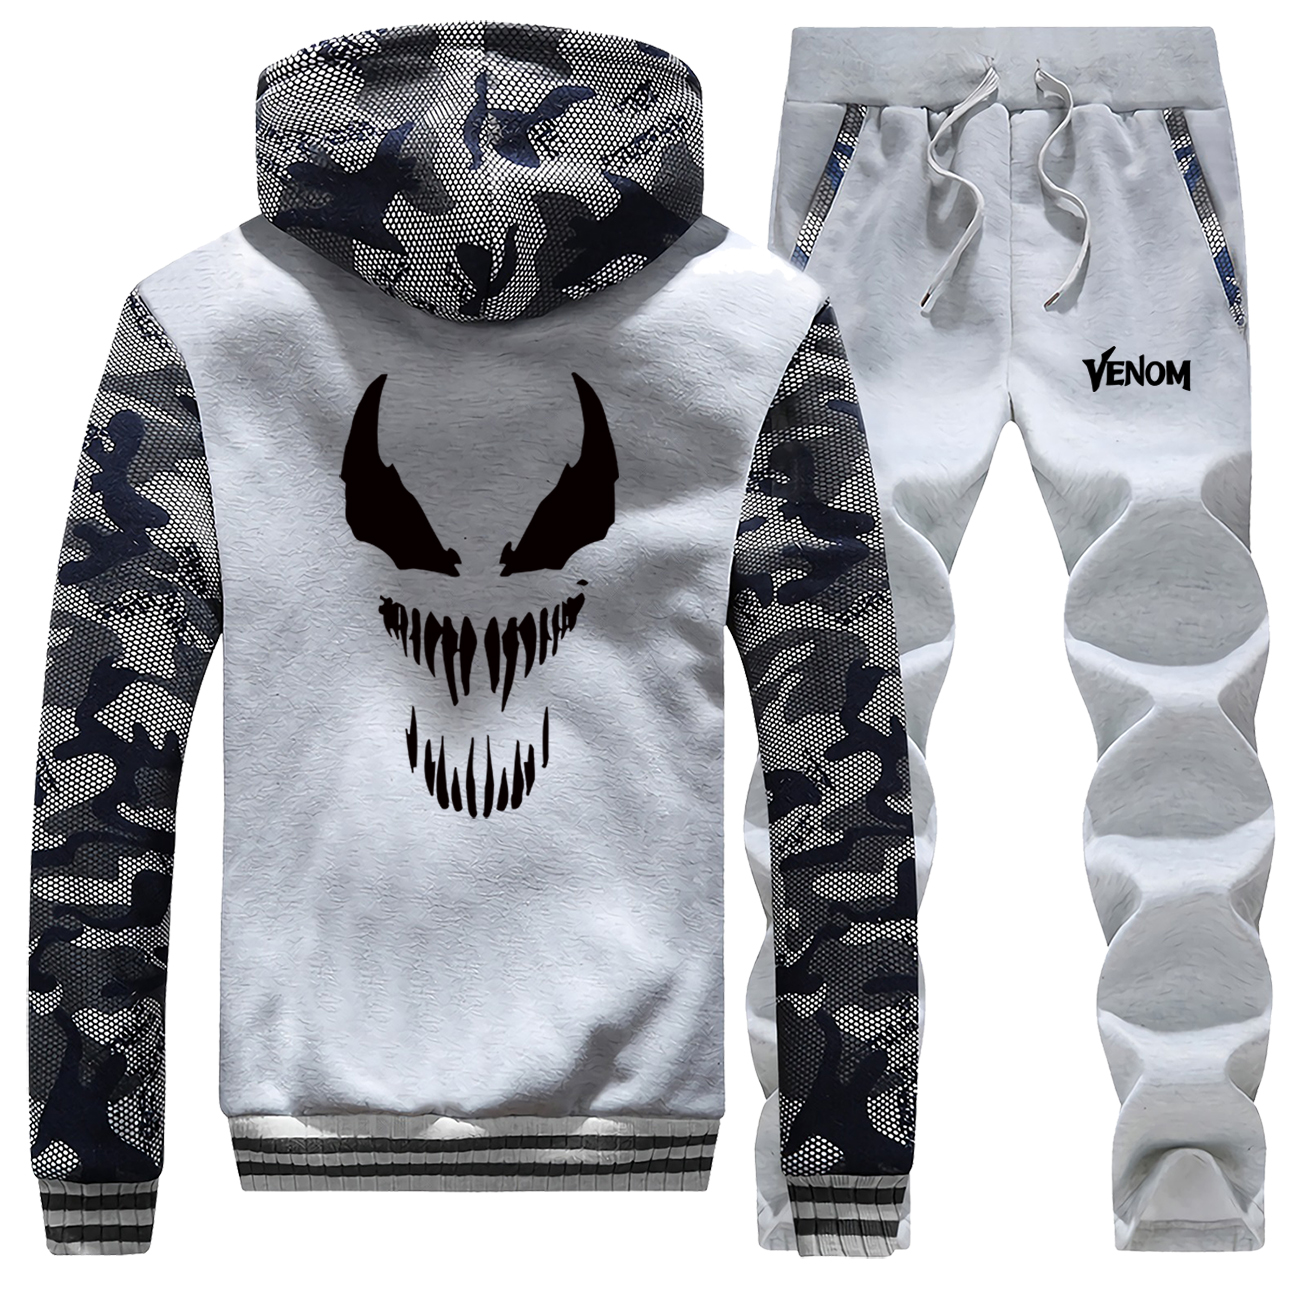 Venom Marvel Mens Two Piece Set Male Warm Hooded Coats Sports Pants Autumn Winter Fleece Jacket Street Sweatpants Brand Clothes